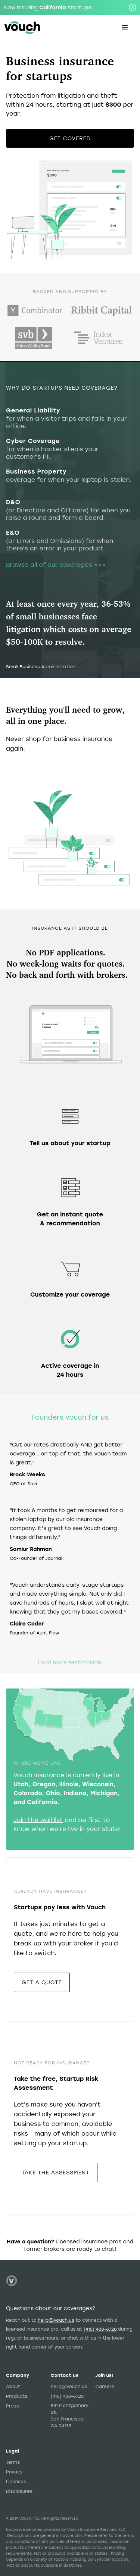 Example of Design for Finance, Insurance, Mobile Landing Page by vouch.us | Mobile Landing Page Design